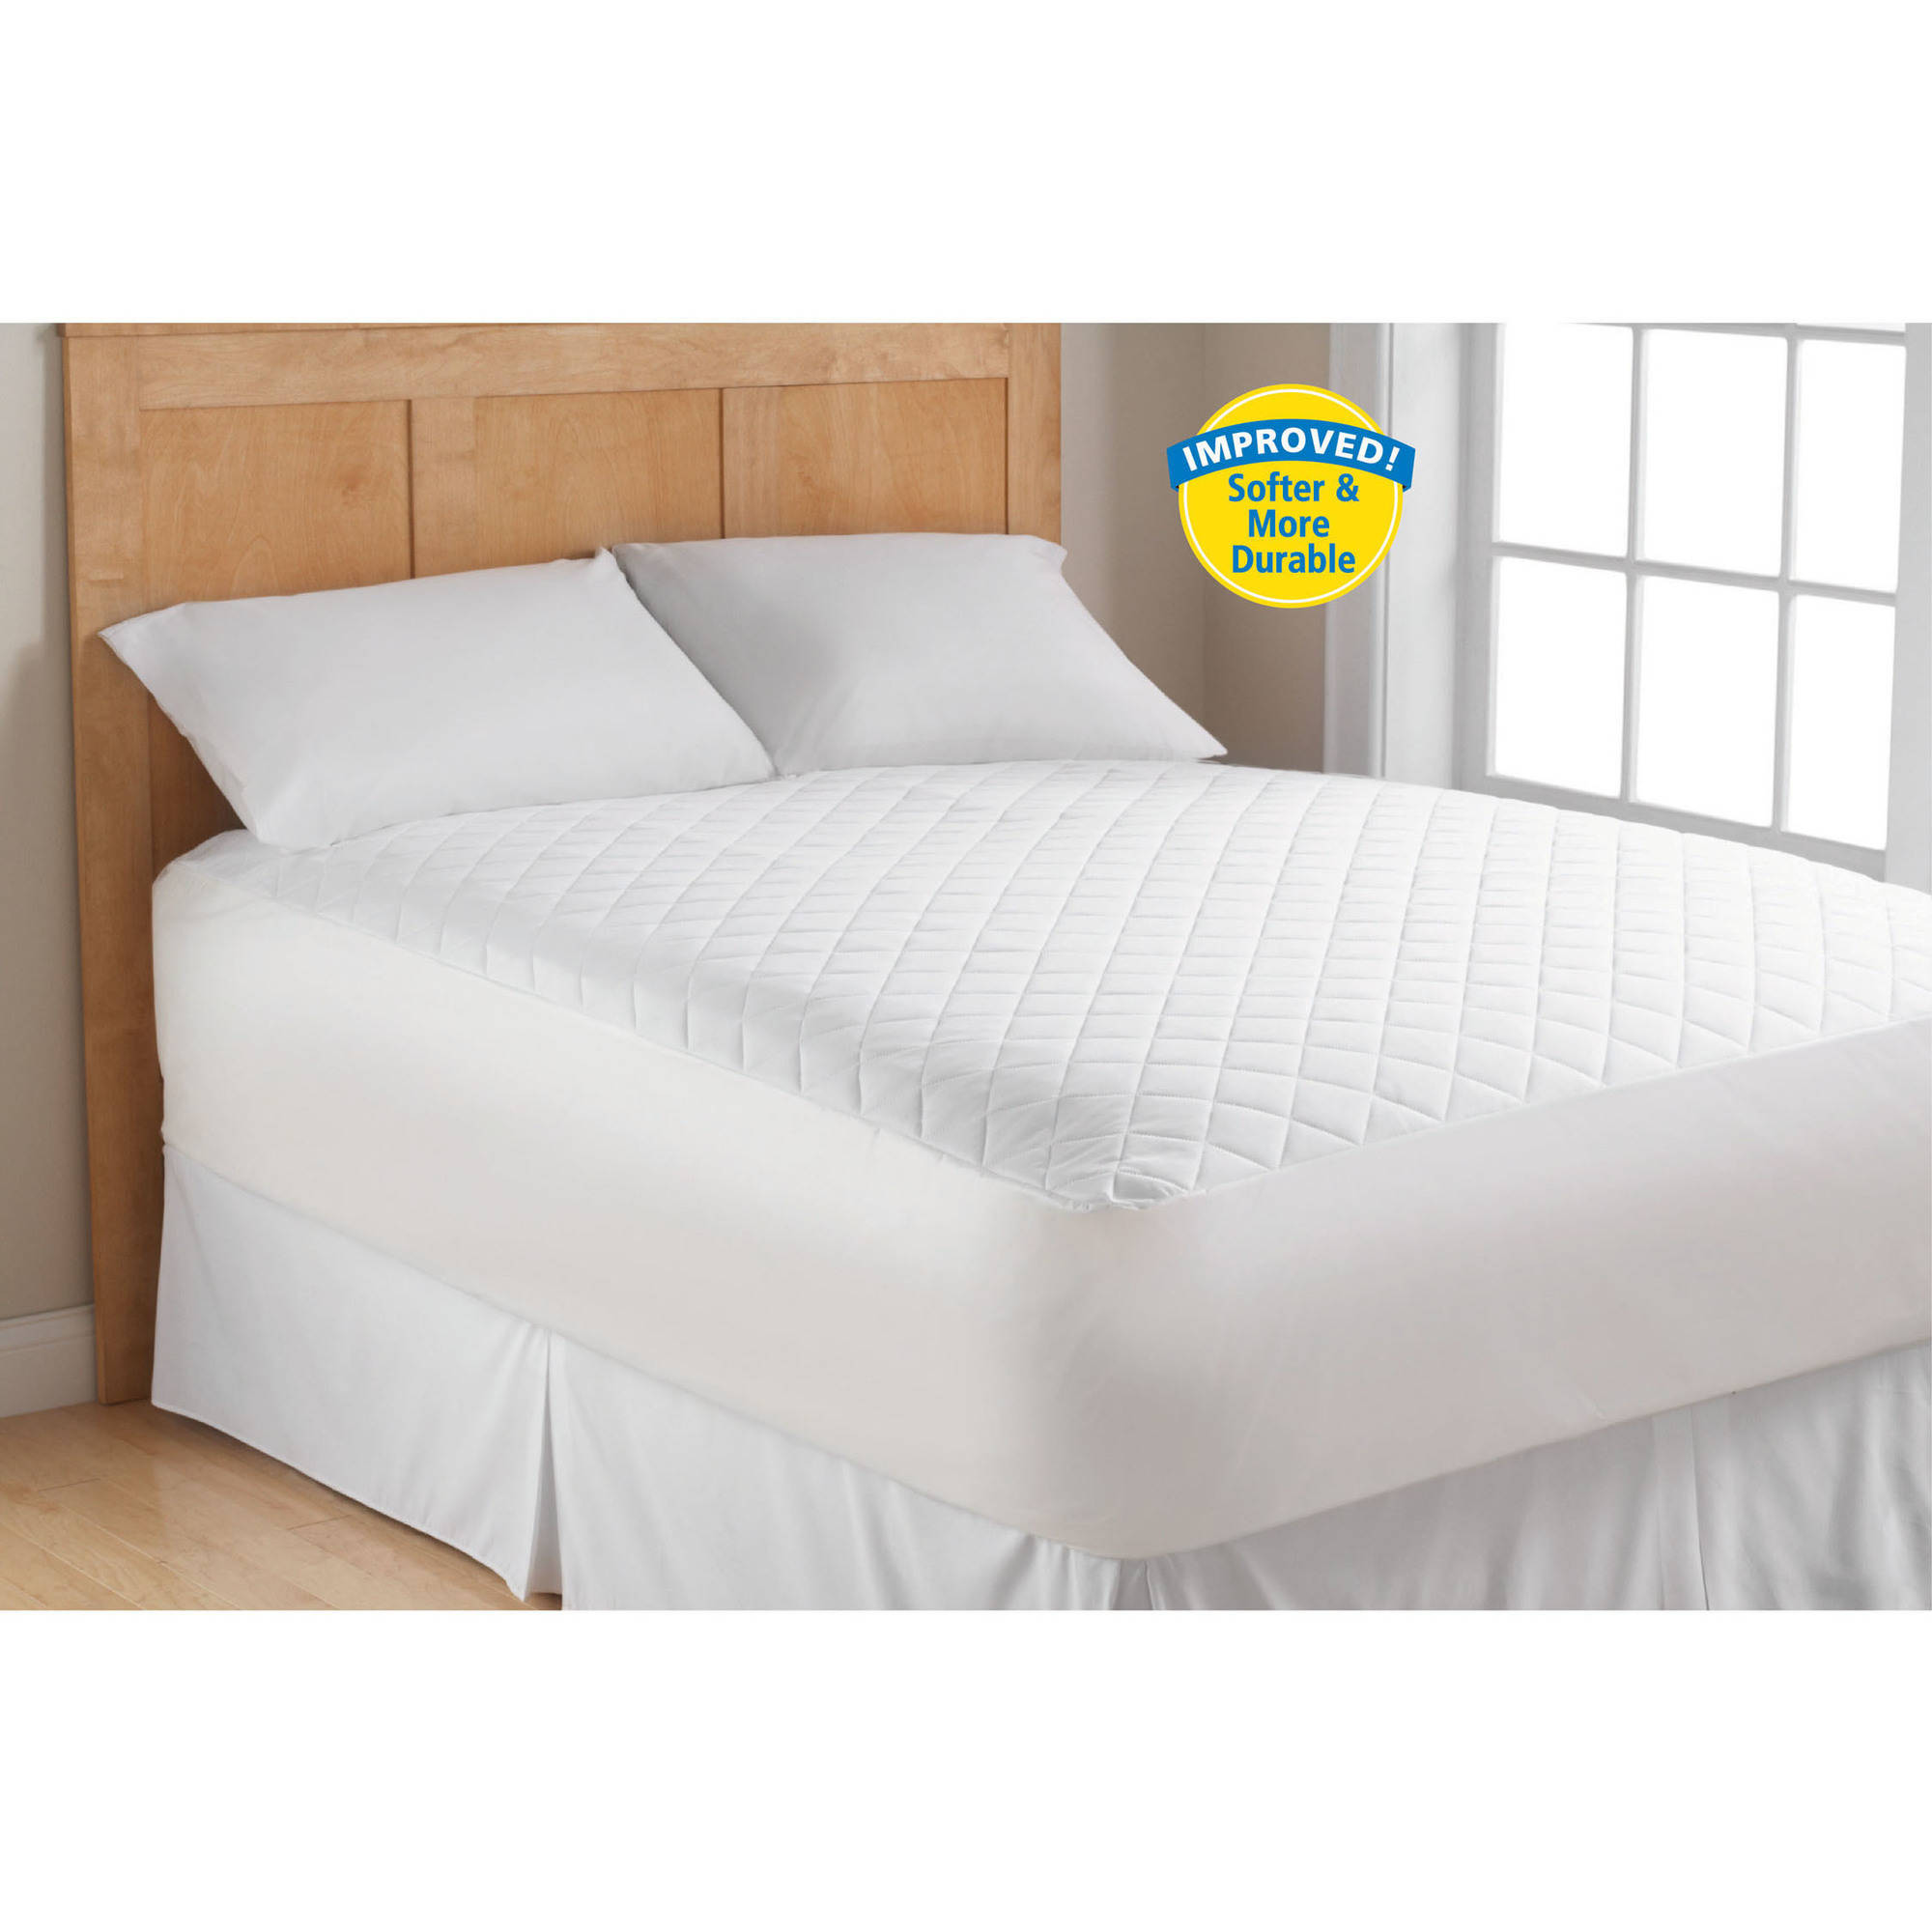 Mainstays Supersoft Mattress Pad, Queen by ZHEJIANG MULTI GLORY HOME TEXTILES CO LTD